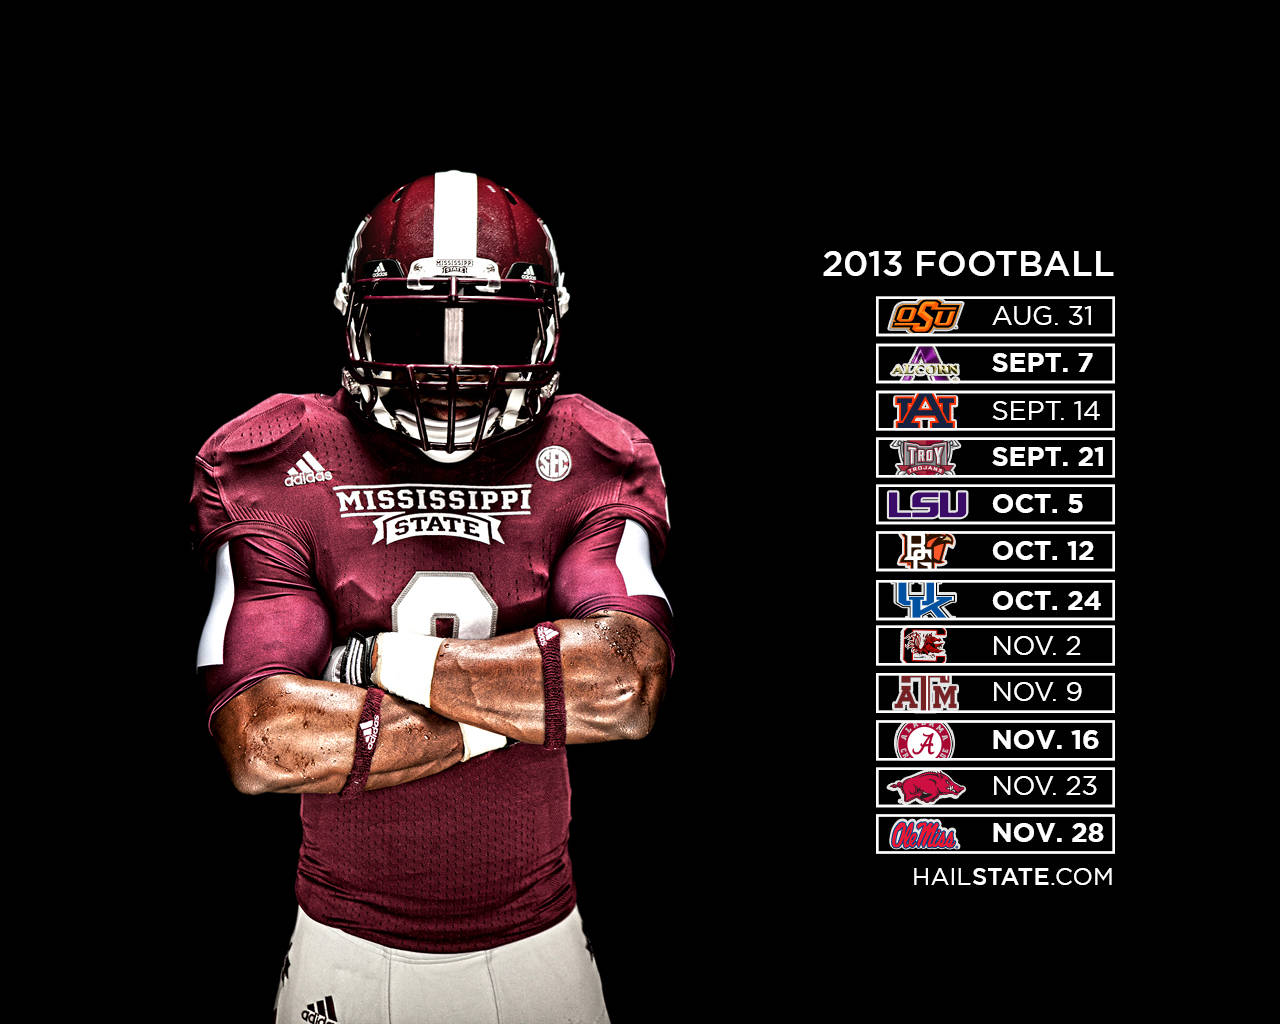 Florida State Football Wallpaper 2013 football wallpapers 1280x1024